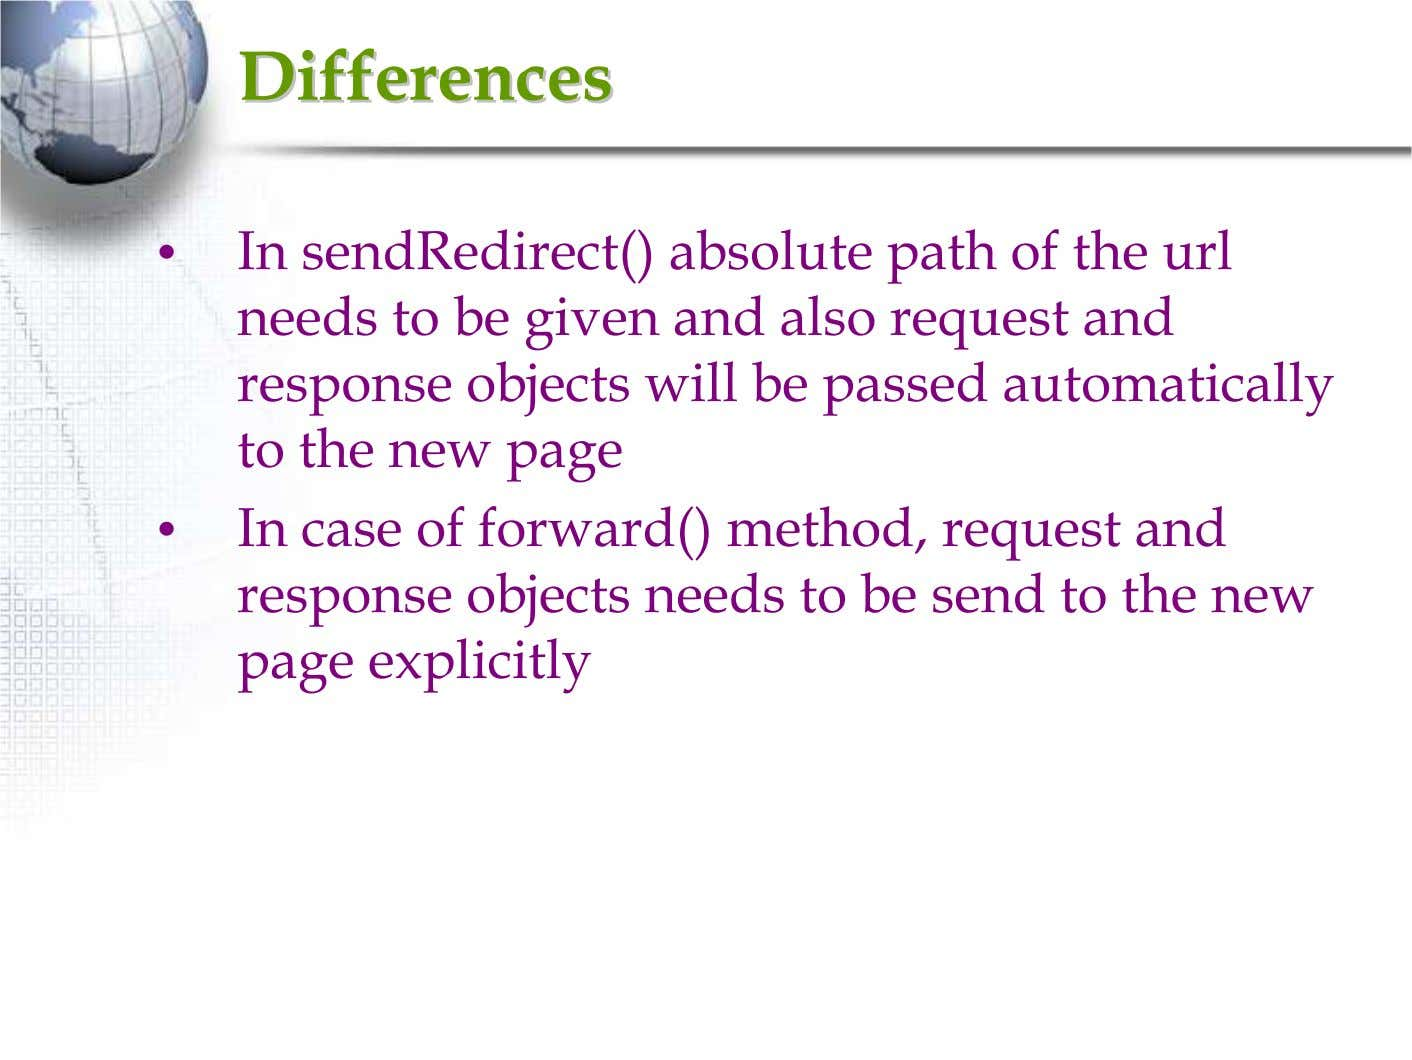 DifferencesDifferences • In sendRedirect() absolute path of the url needs to be given and also